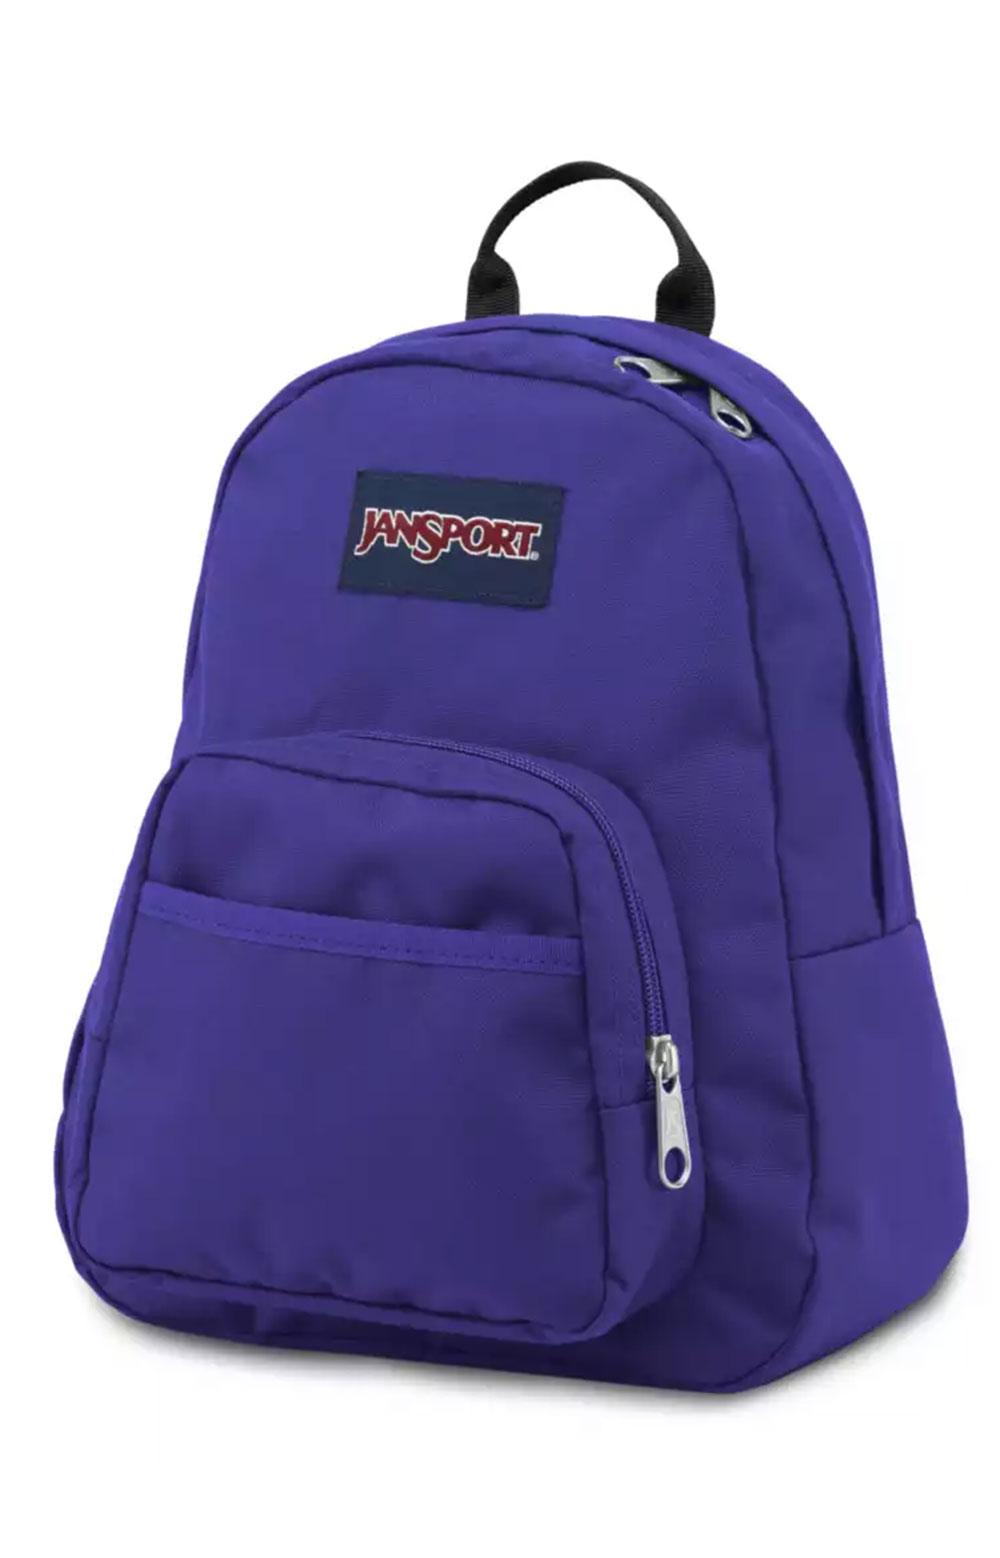 Half Pint Mini Backpack - Violet Purple  3